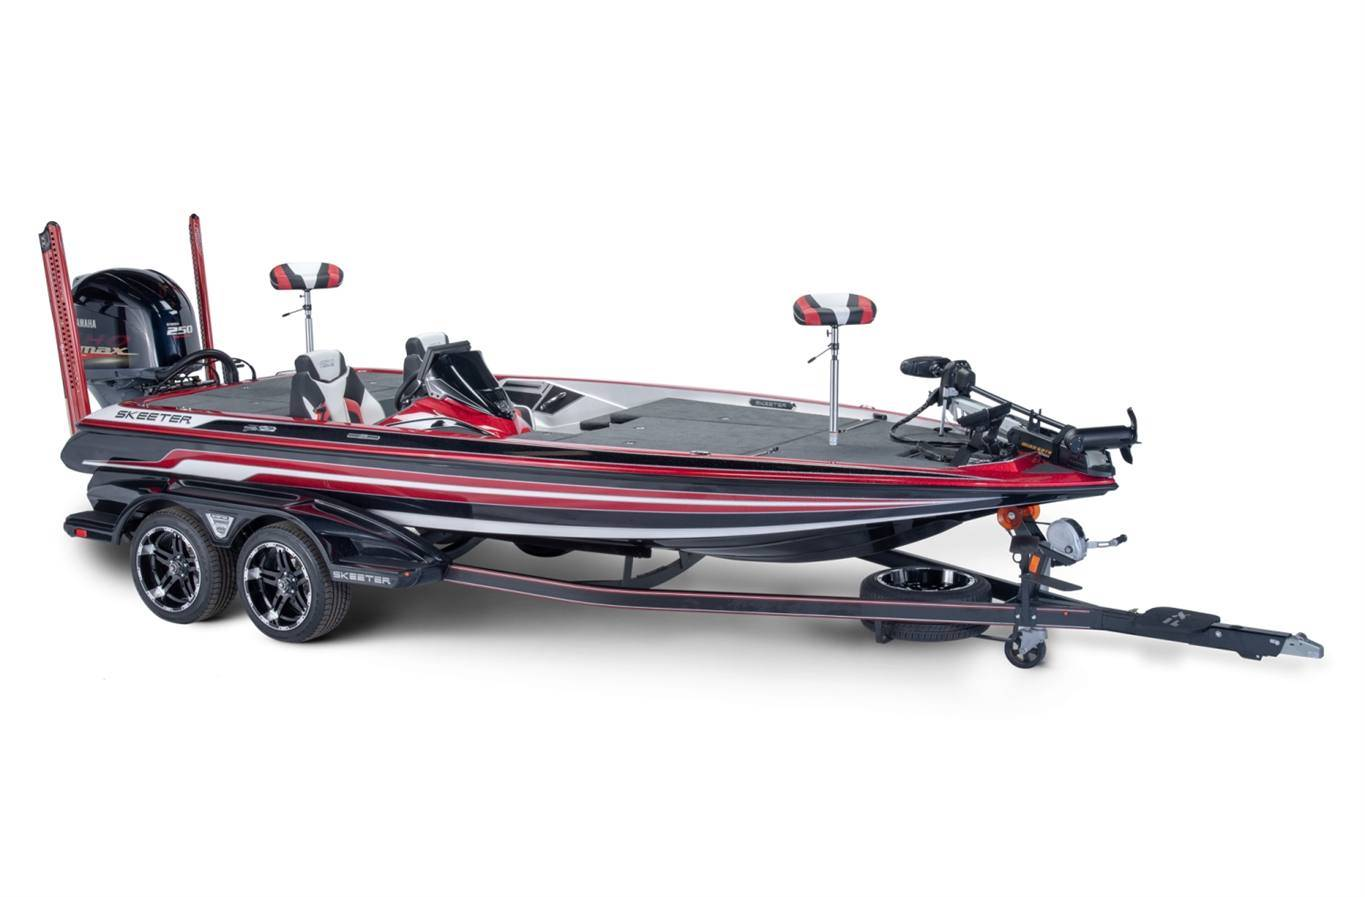 Skeeter FX SERIES FX21 LIMITED EDITION